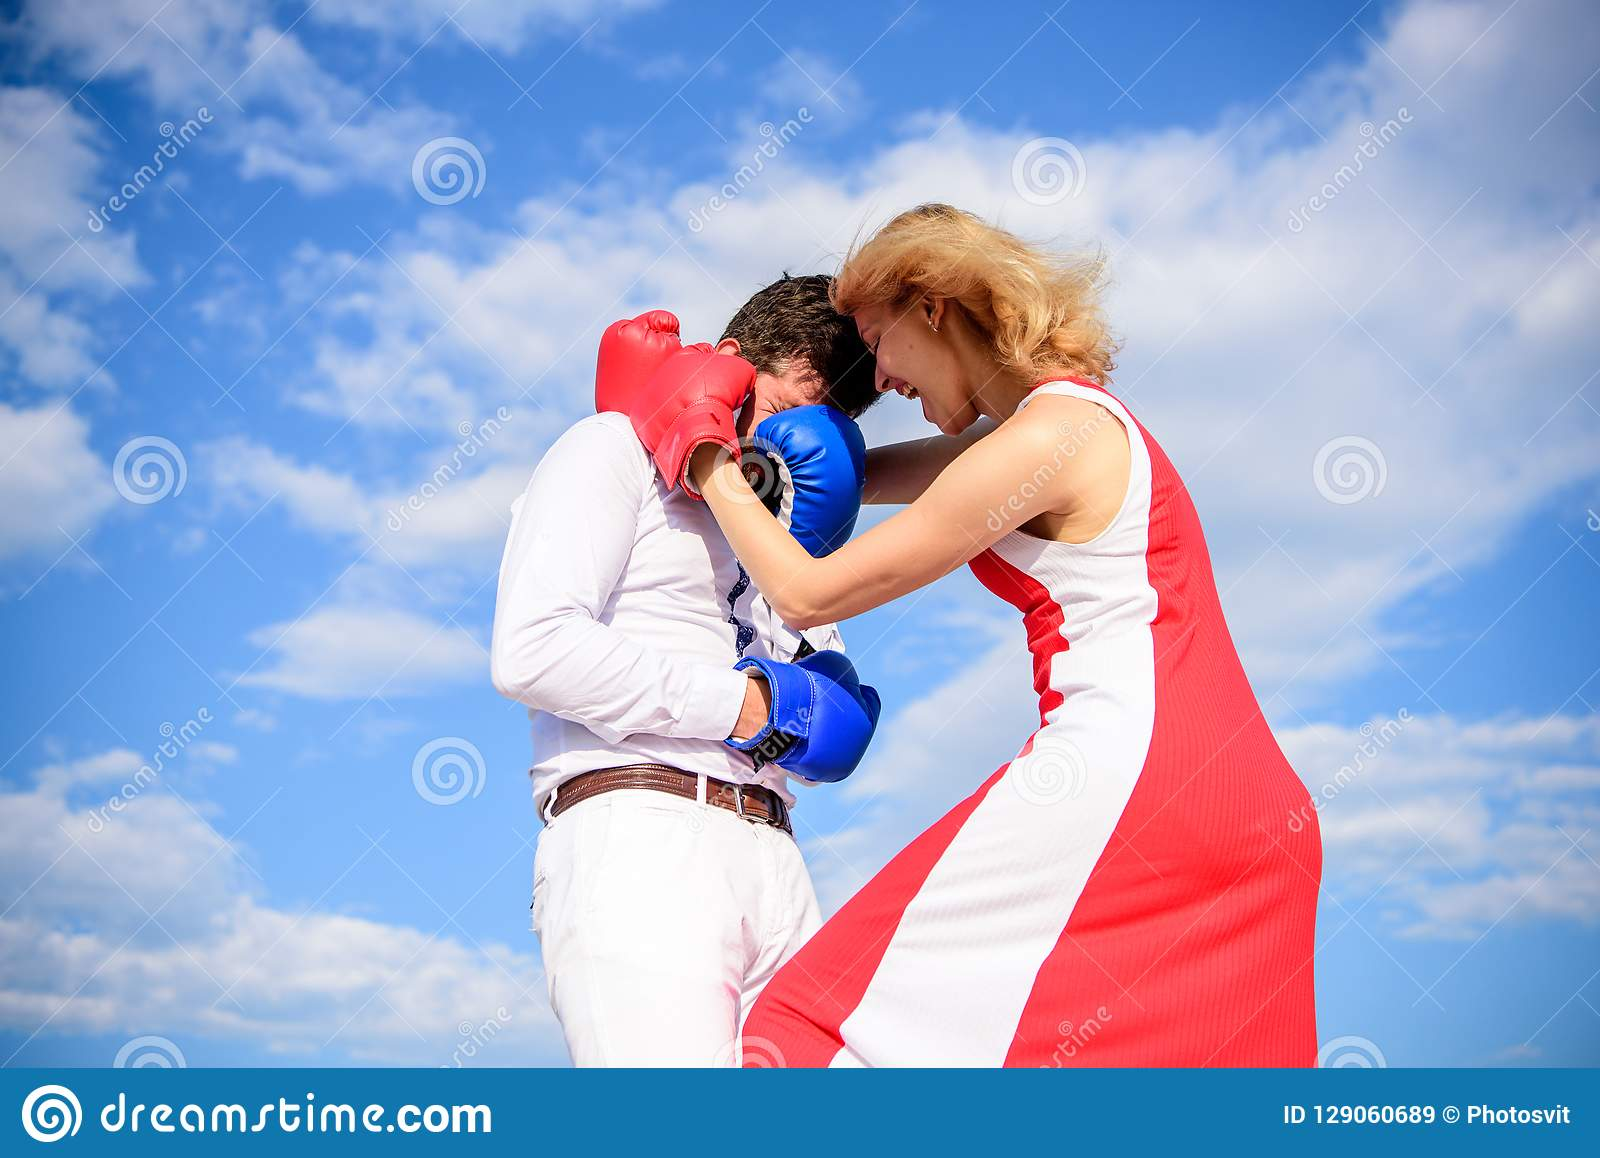 Dating Woman Boxing